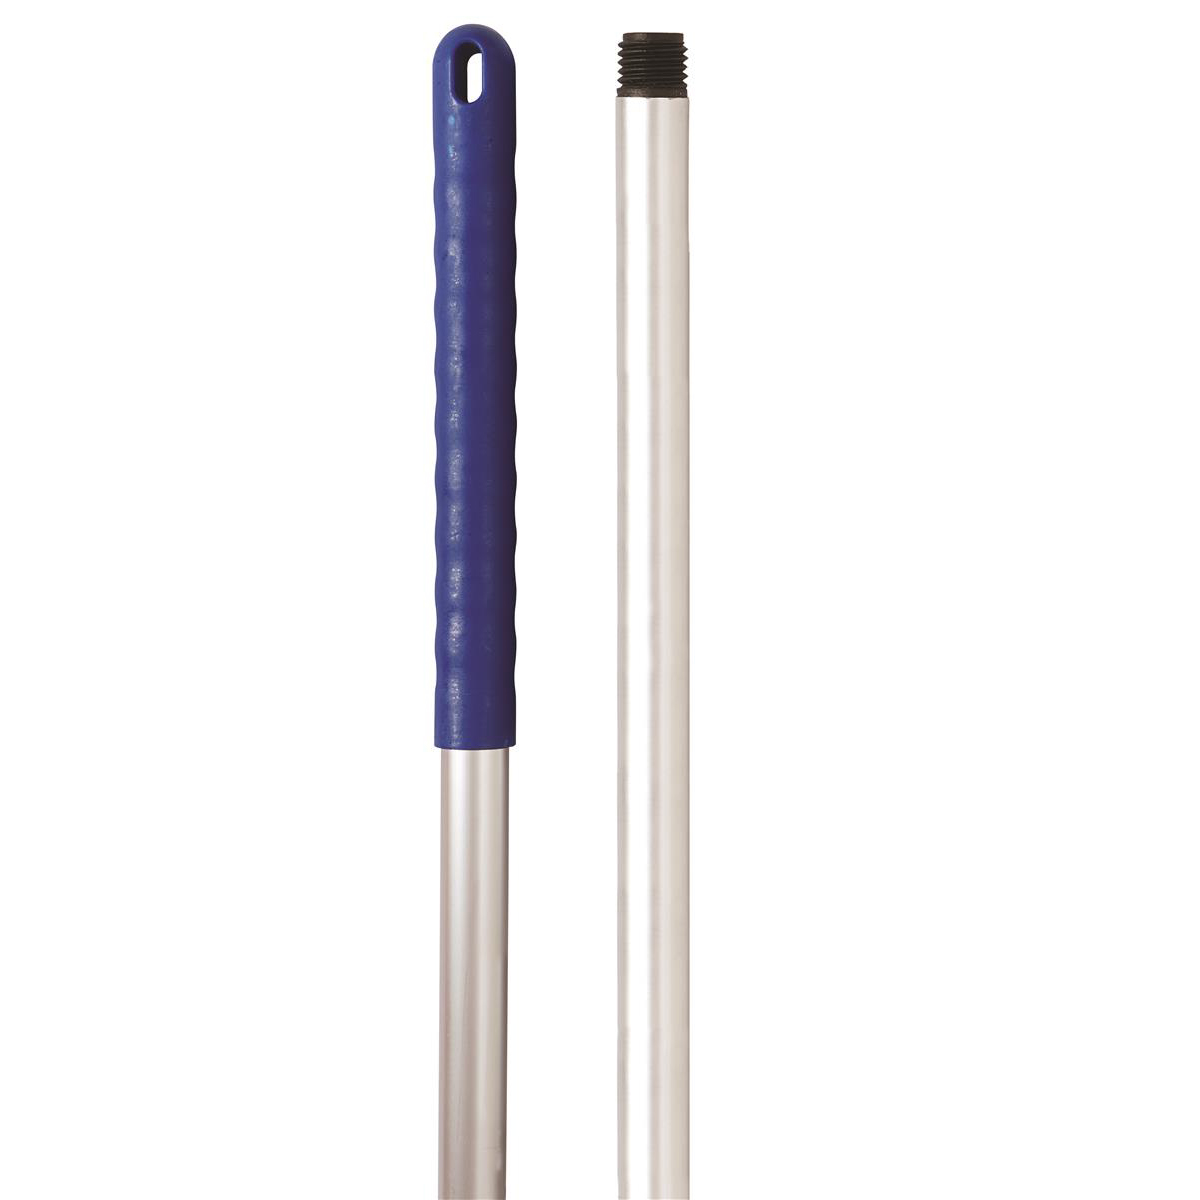 Robert Scott & Sons Abbey Hygiene Mop Handle Aluminium Colour-coded Screw 125cm Blue Ref 103132BLUE